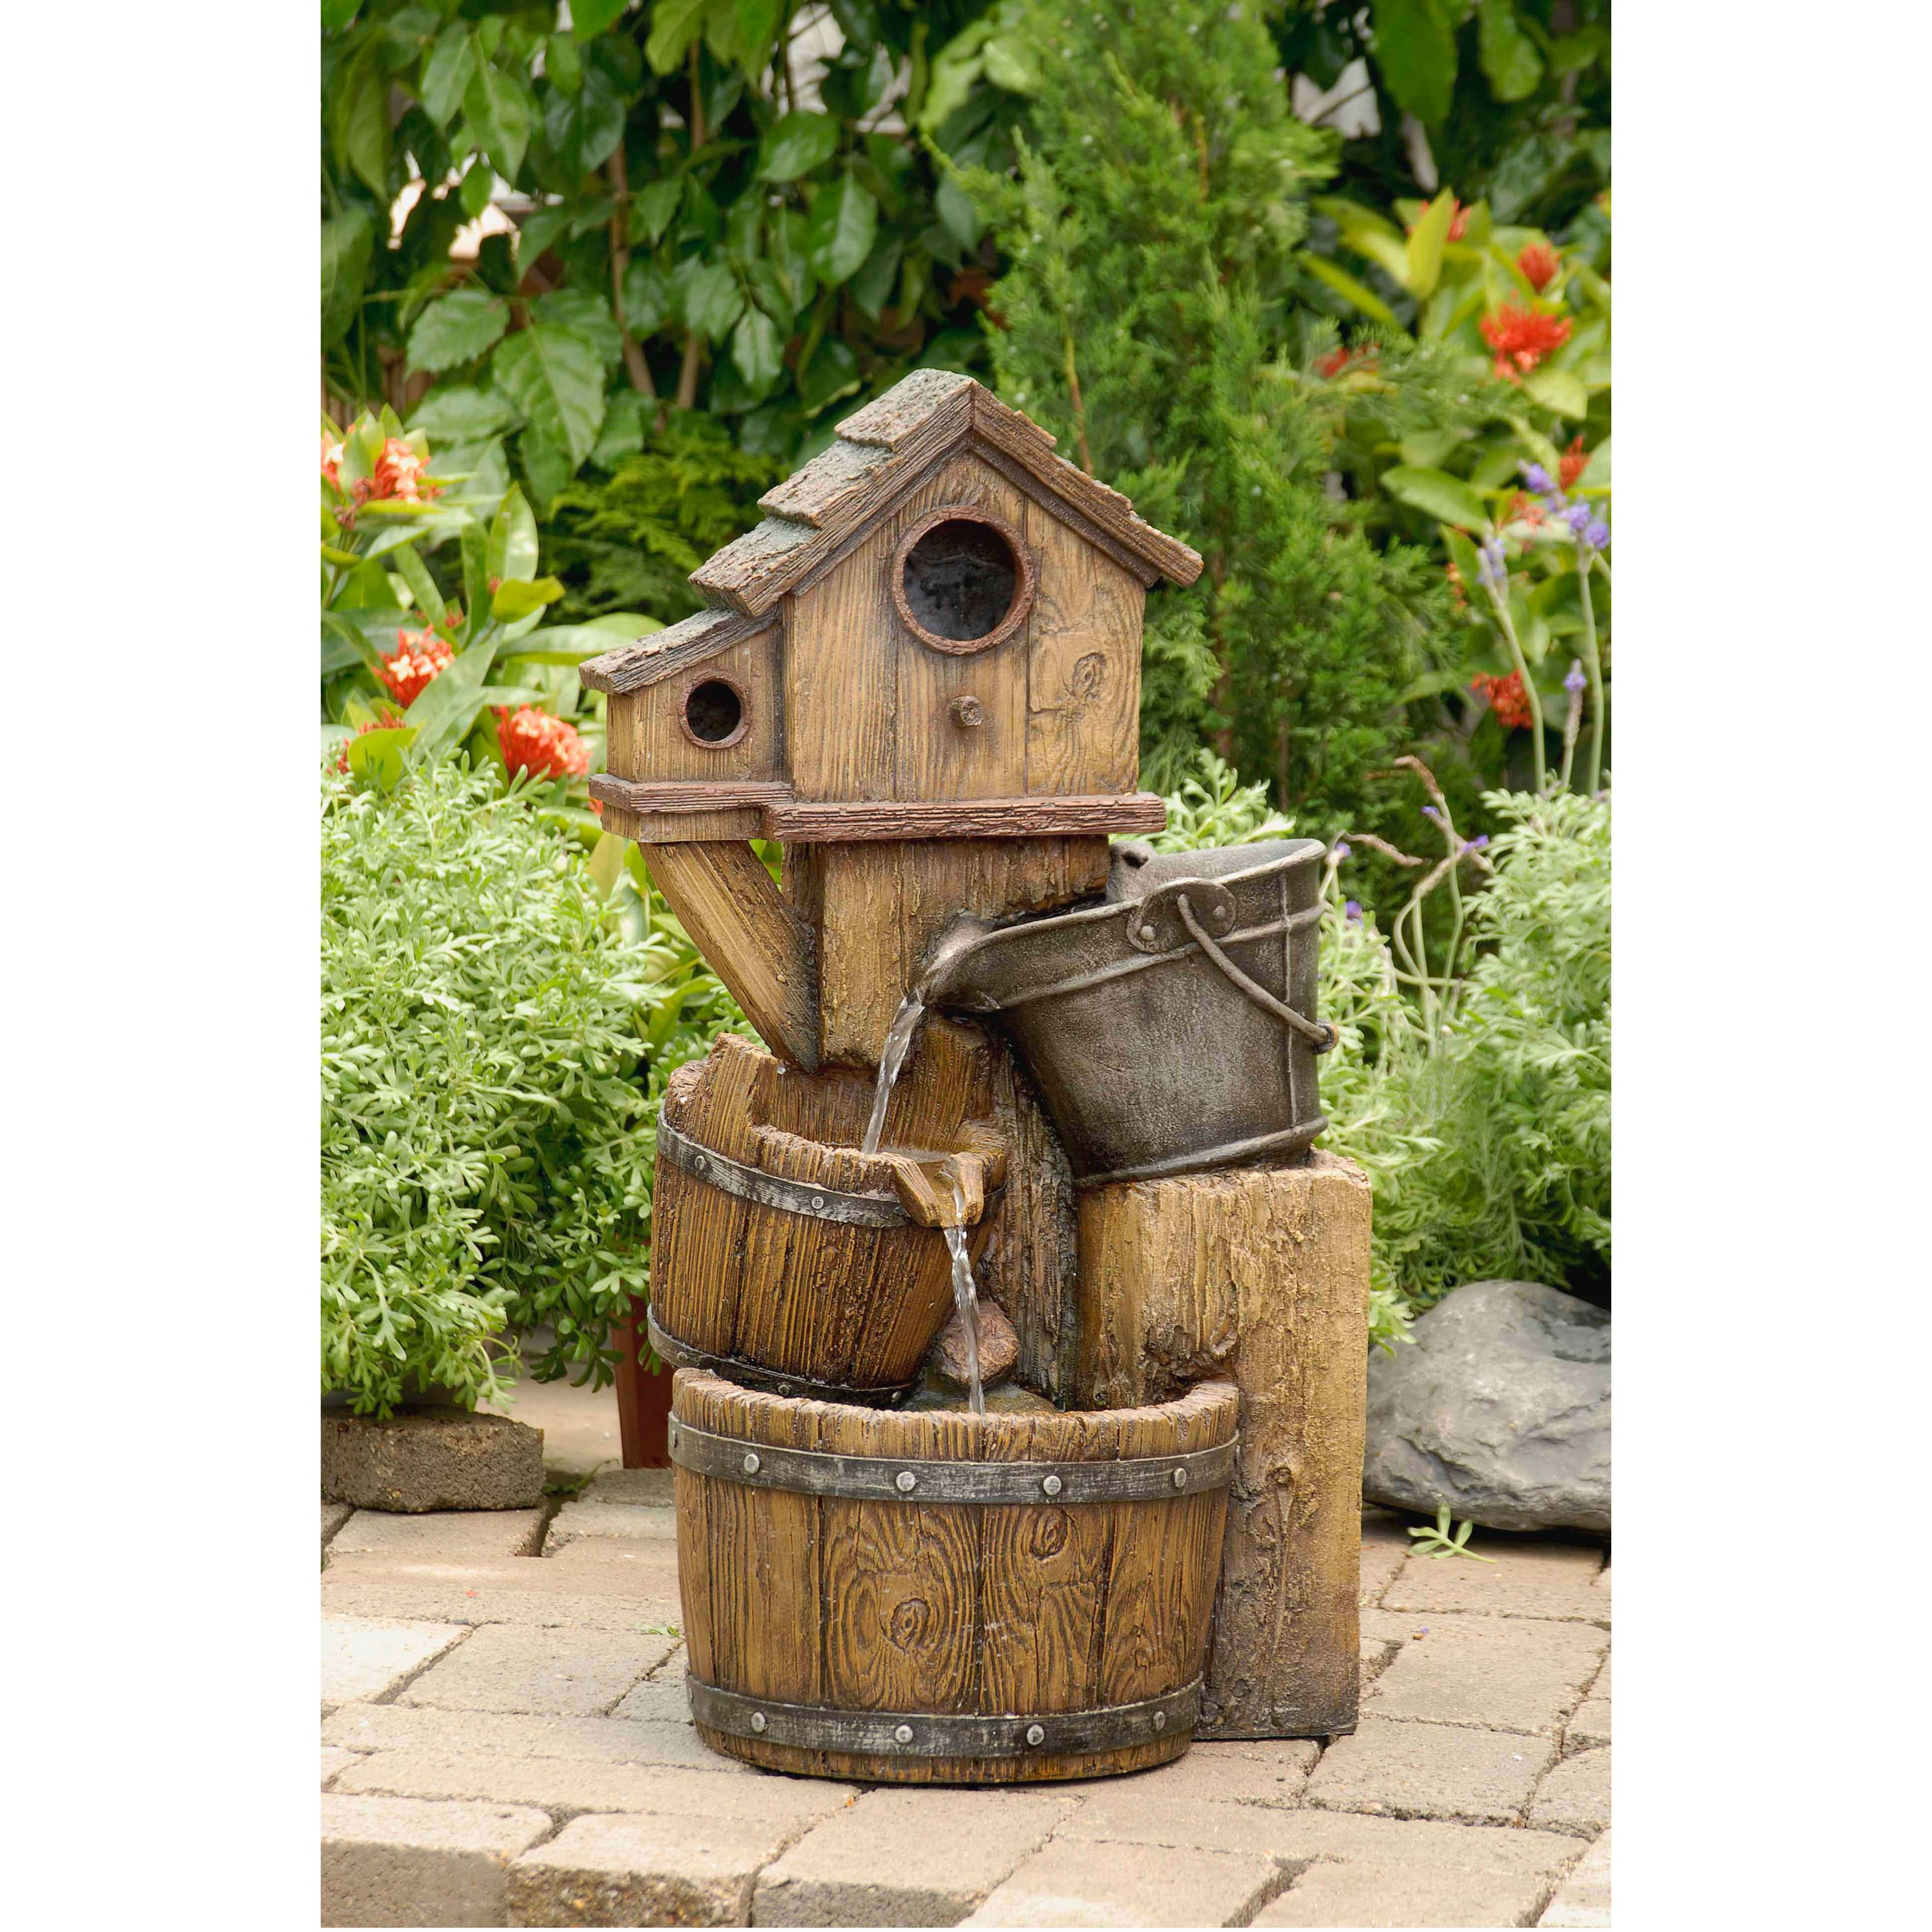 Jeco Rustic Bird House Outdoor Water Fountain, Brown (Res...